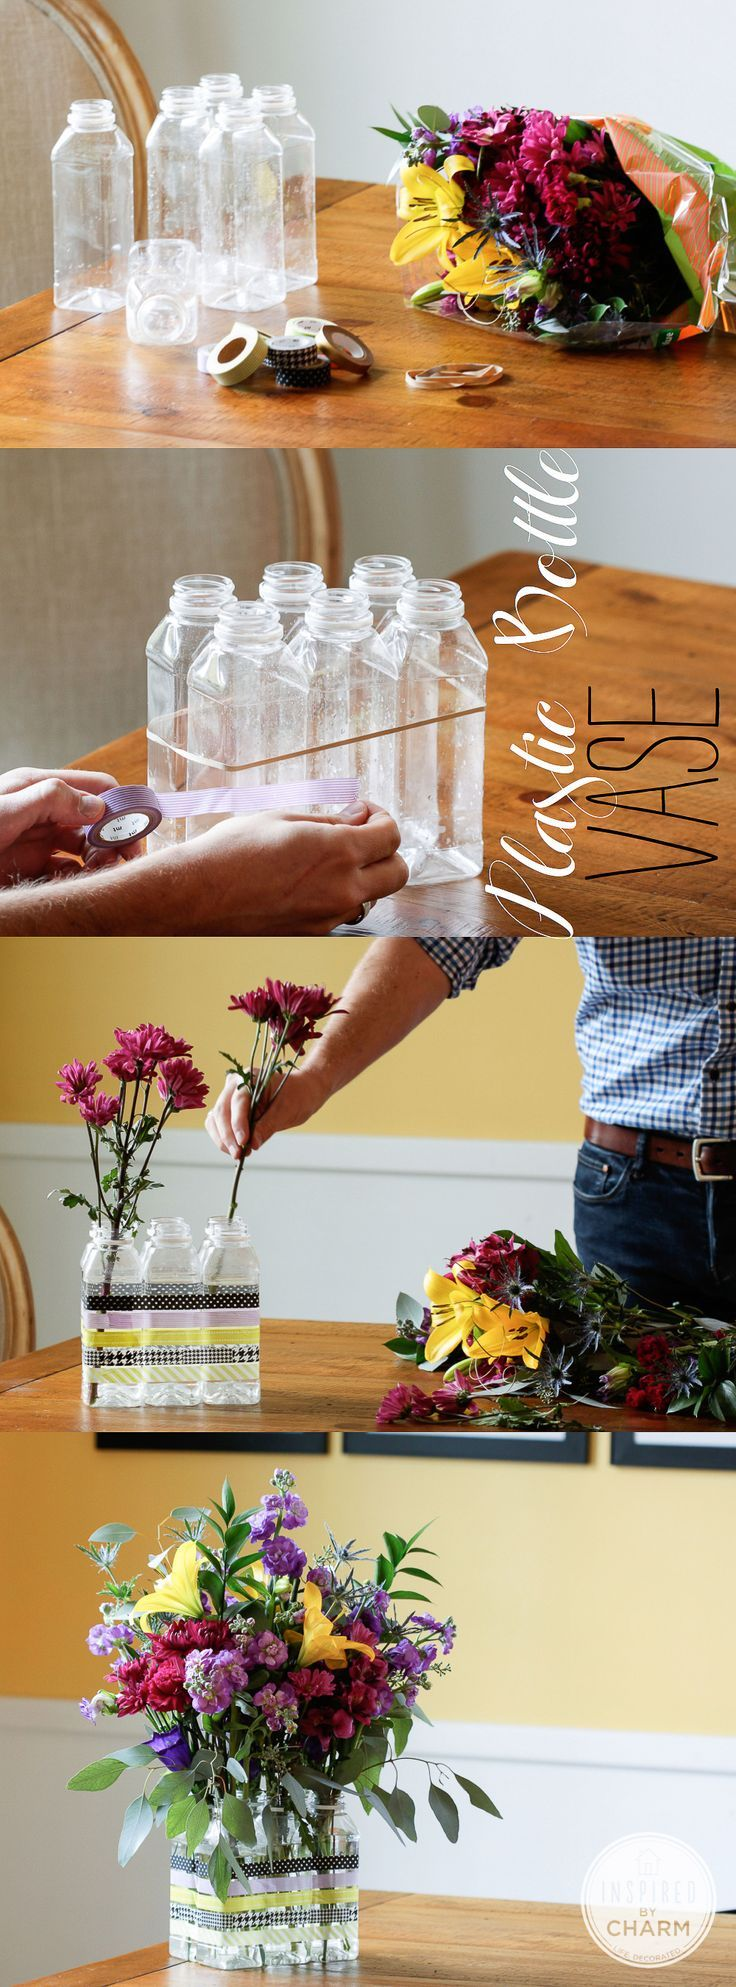 Diy plastic bottle flower vase pictures photos and for Plastic bottle vase craft